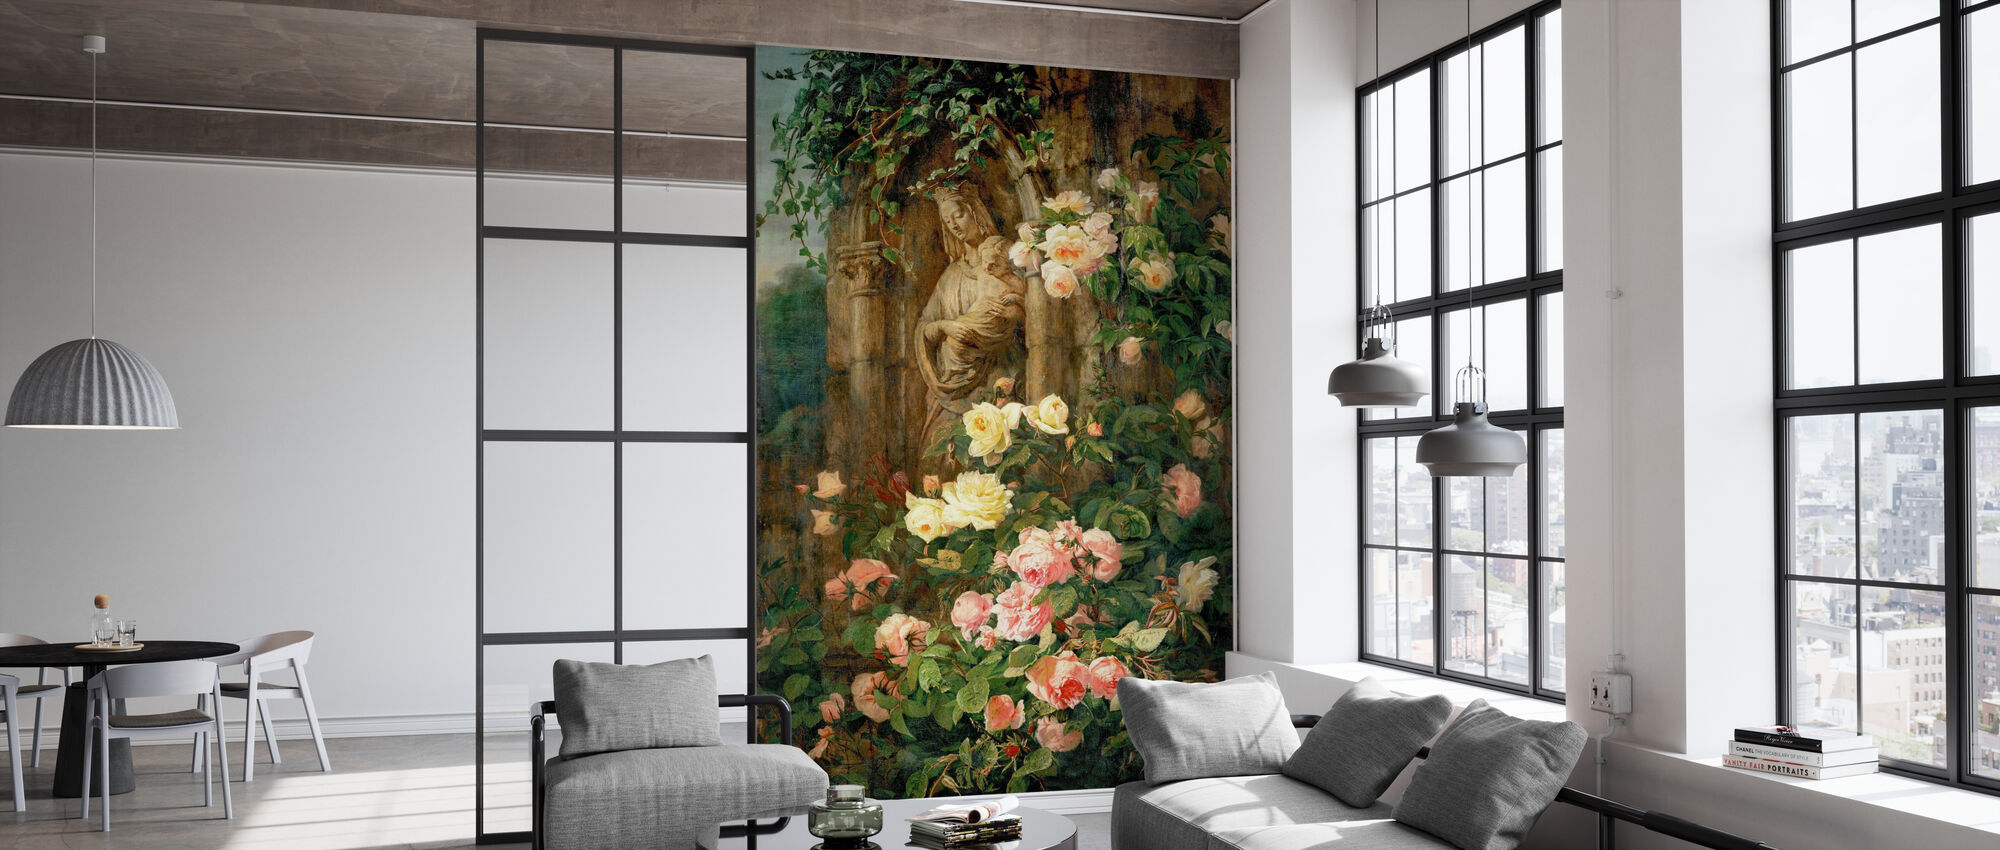 Mother Mary Rose Flower - Simon Saint Jean - Wallpaper - Office